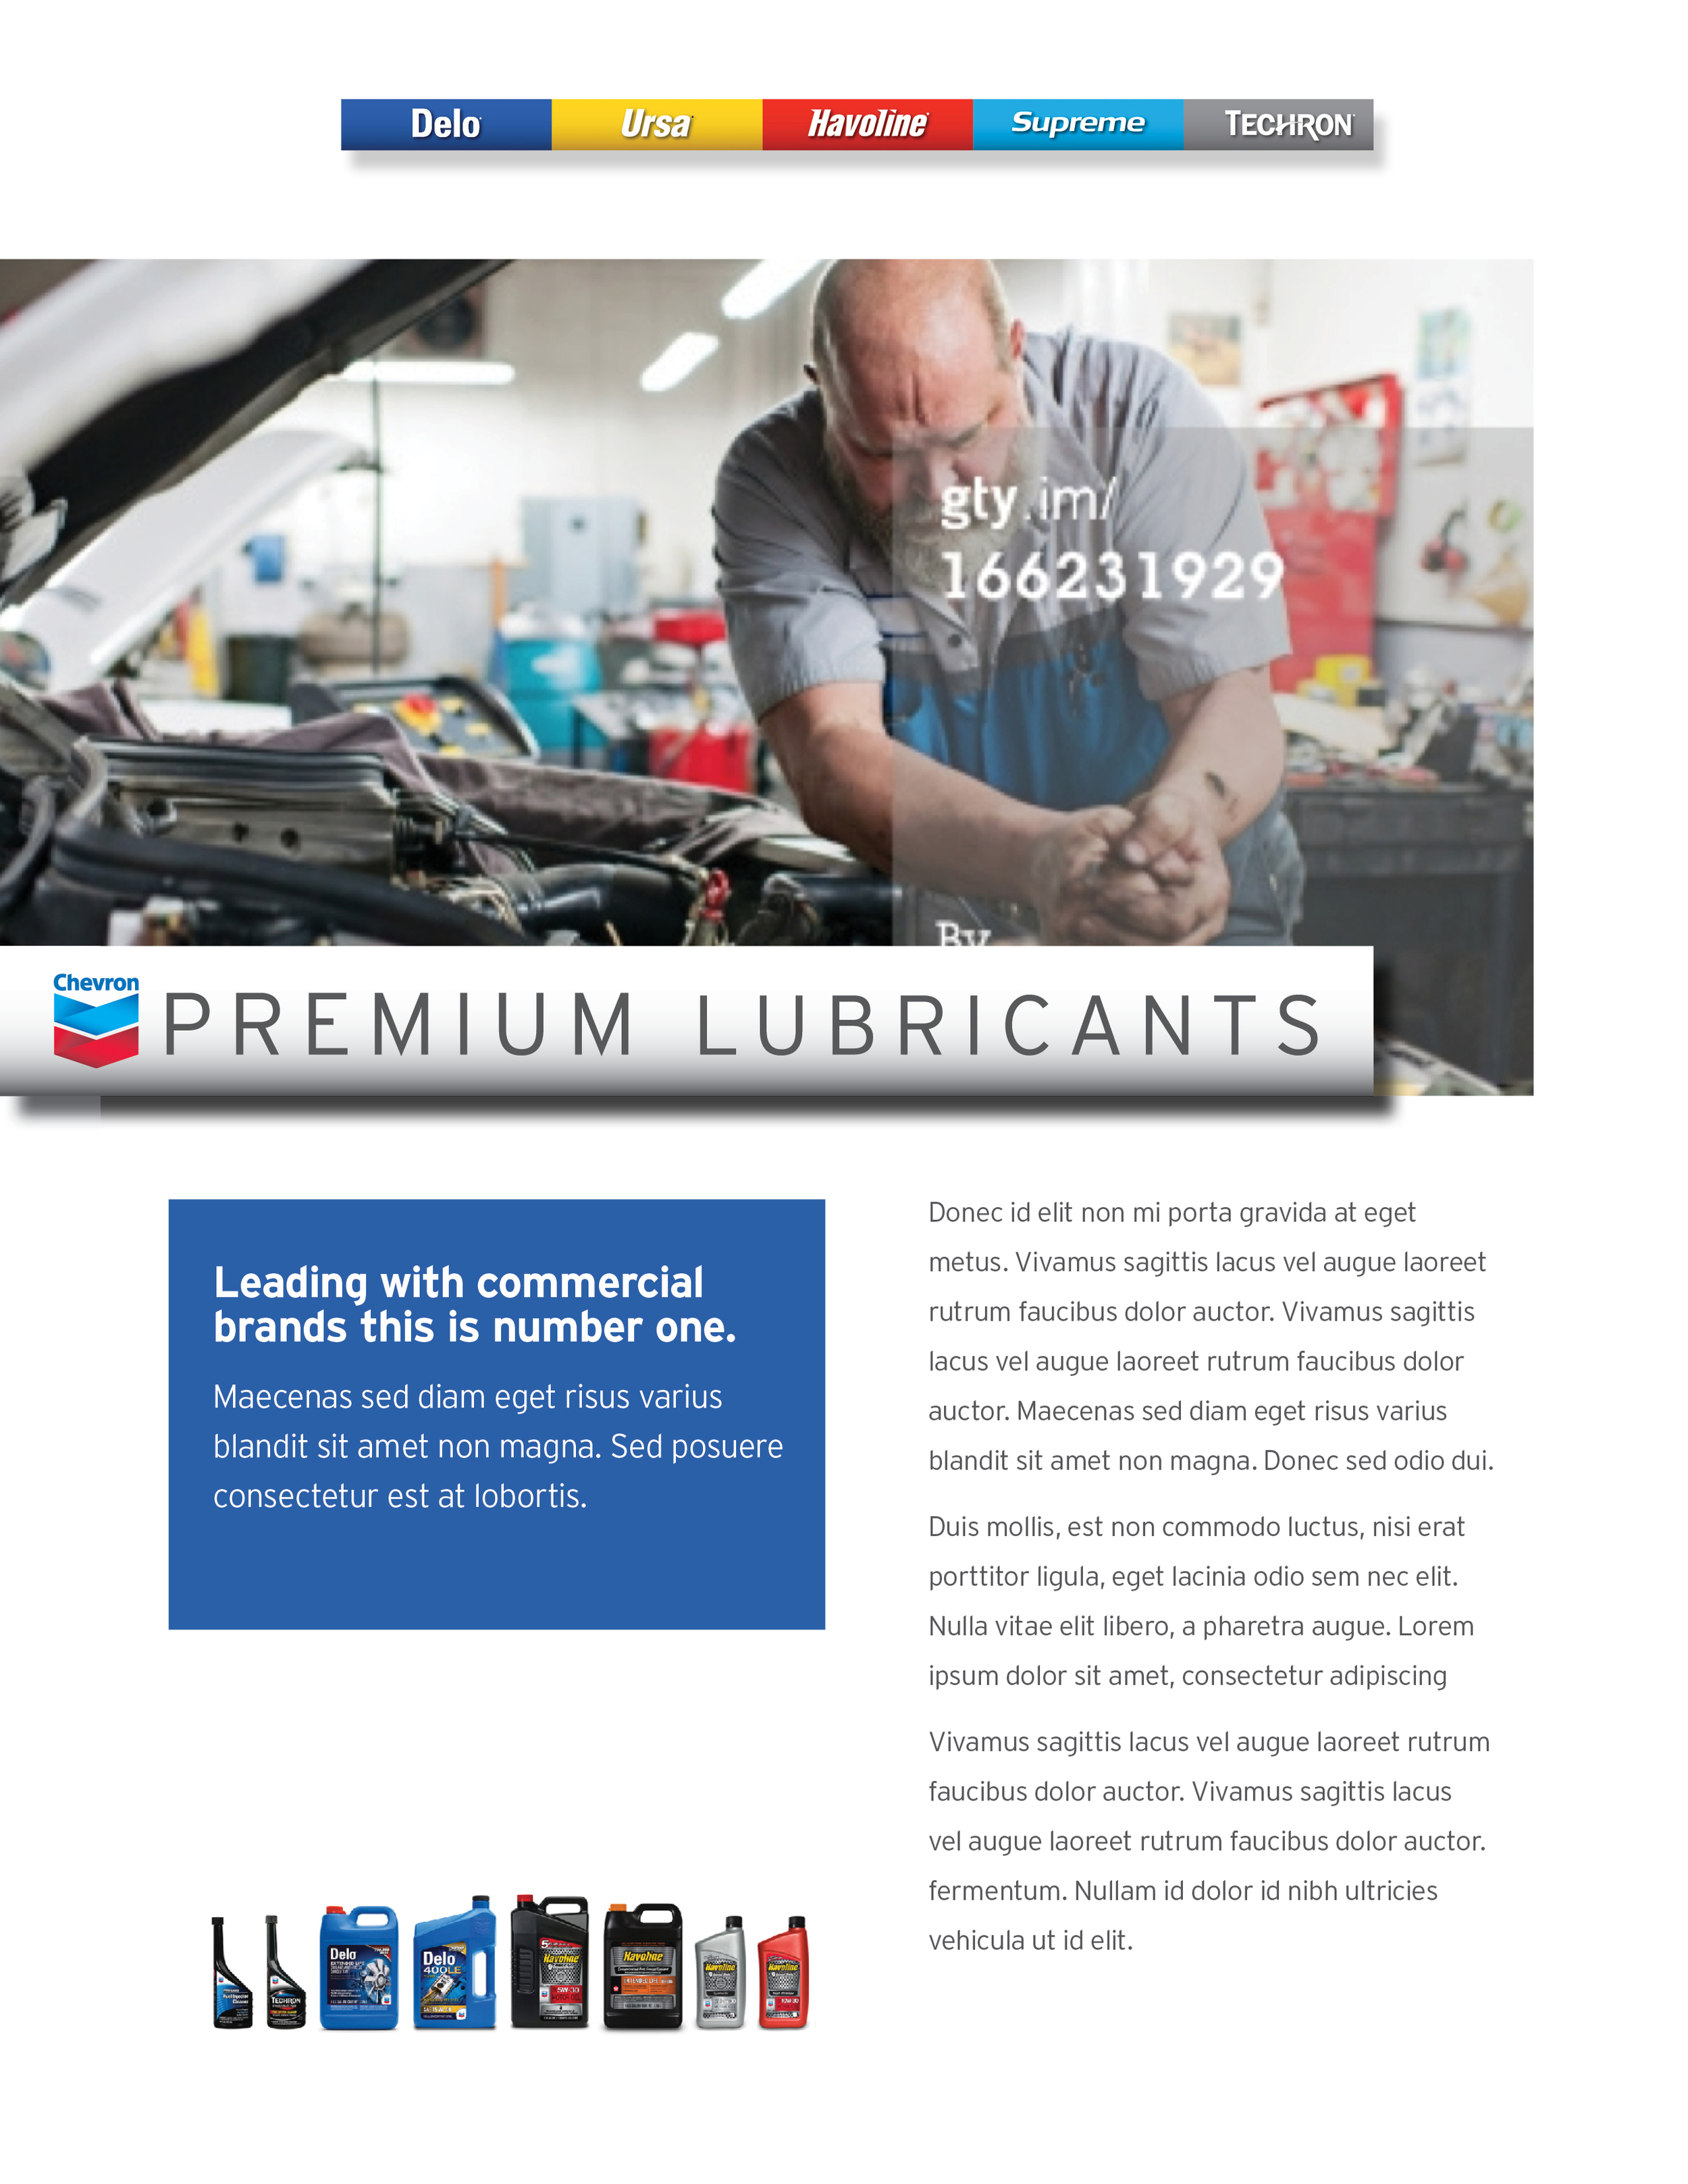 Chevron_Ads_082014.jpg